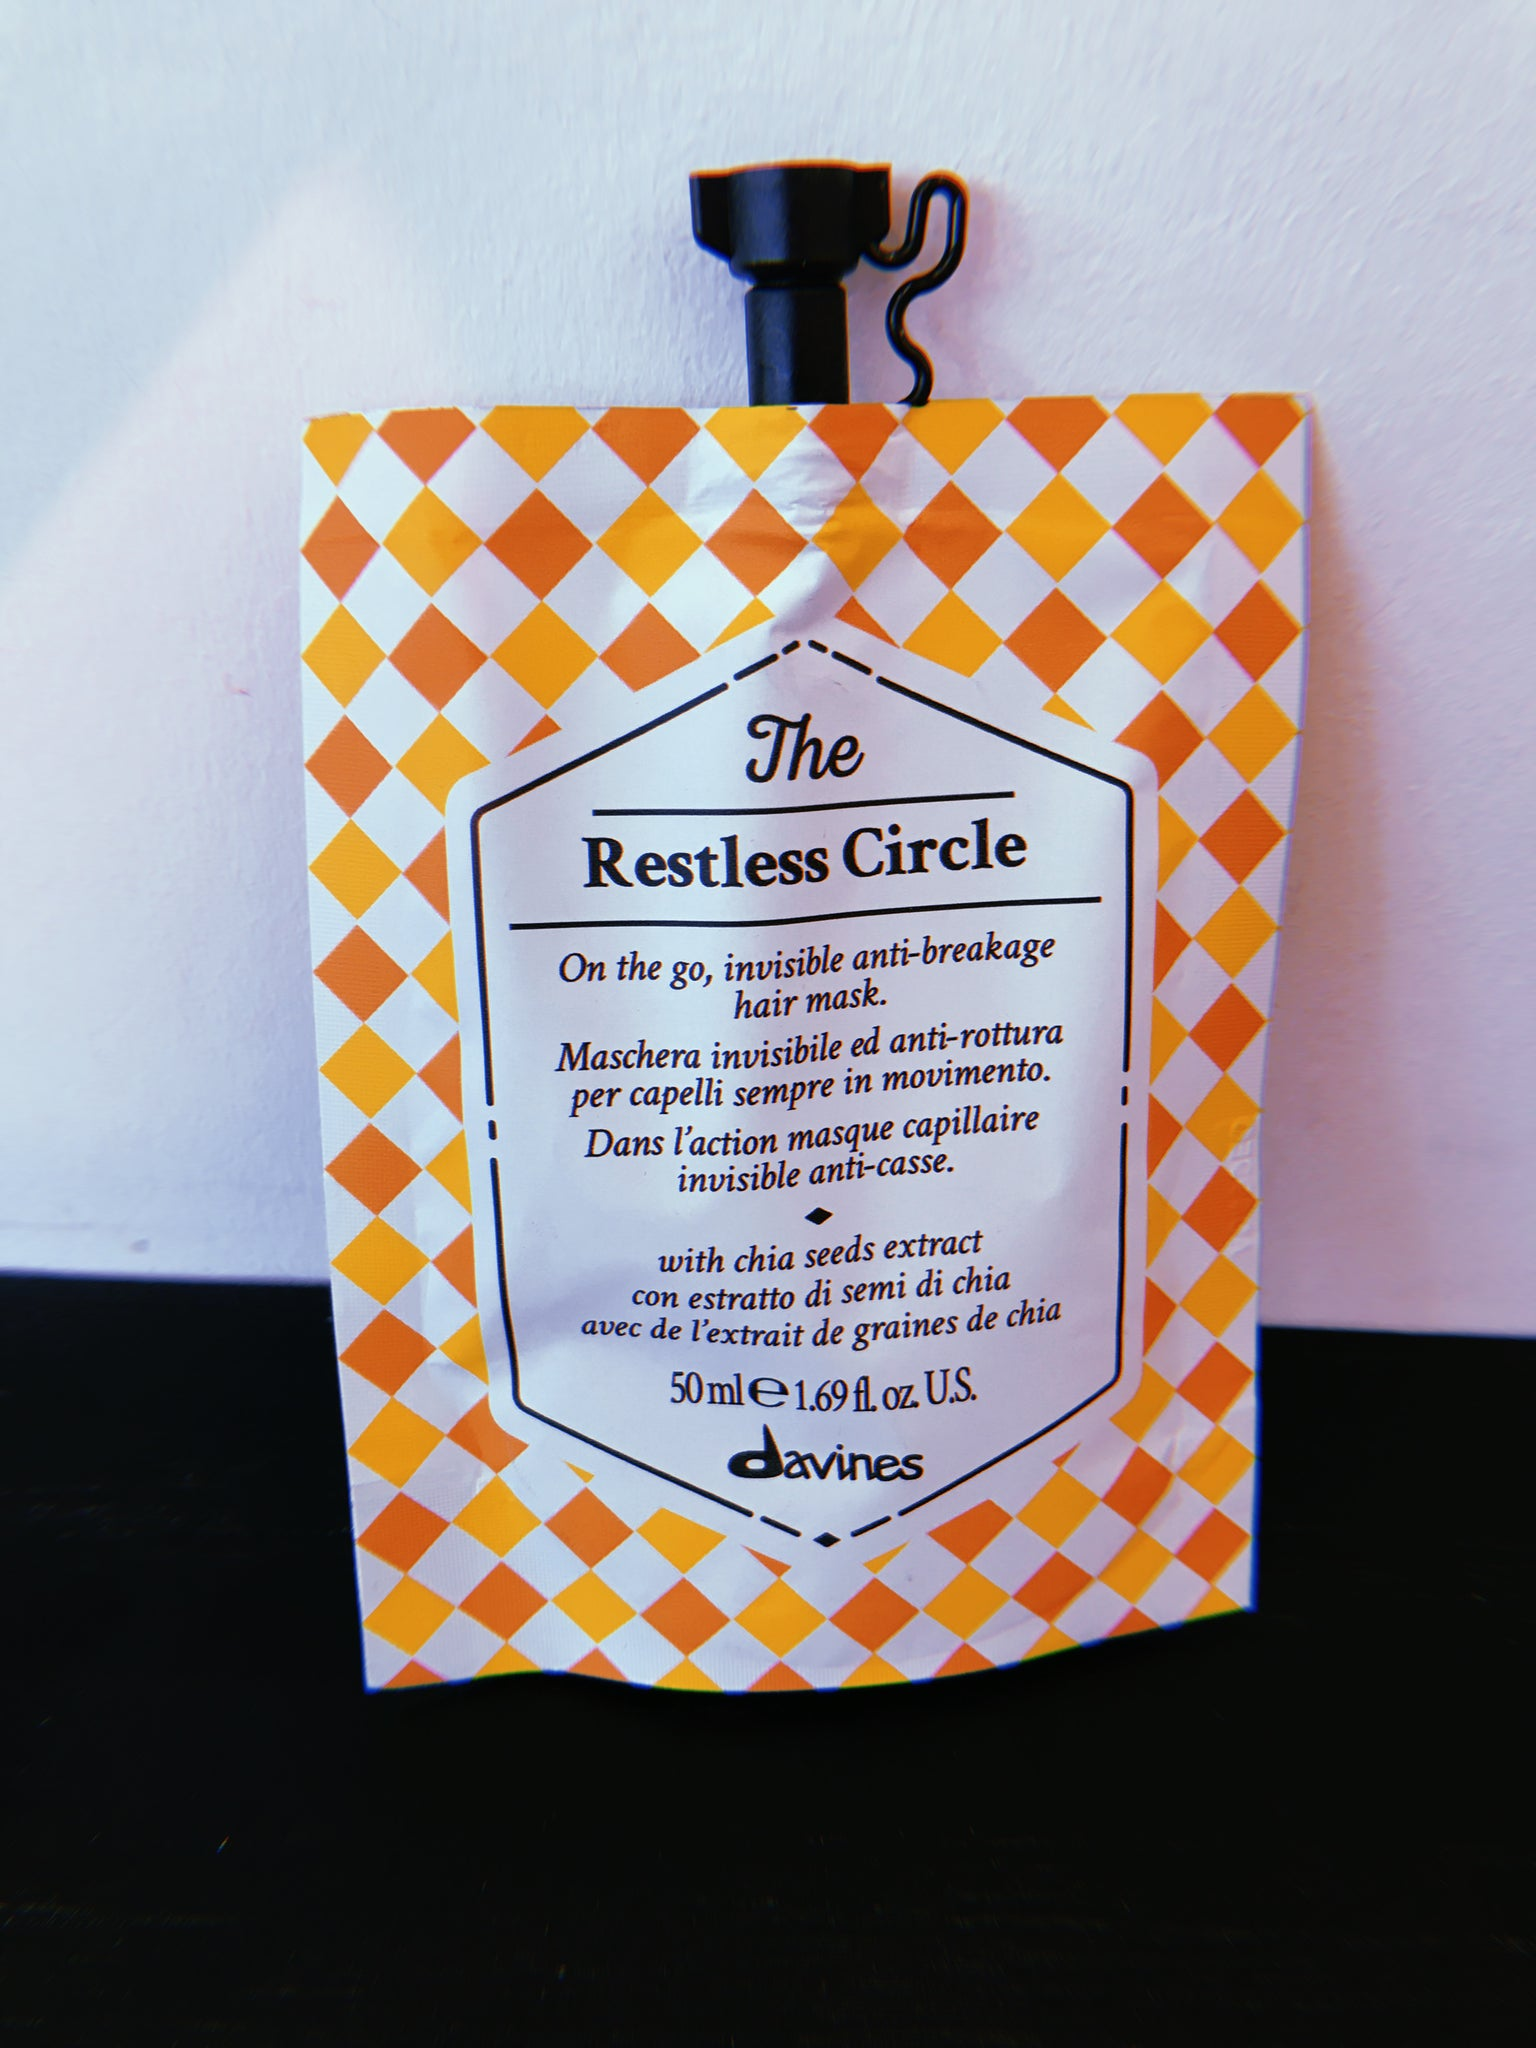 The Restless Circle Hair Mask